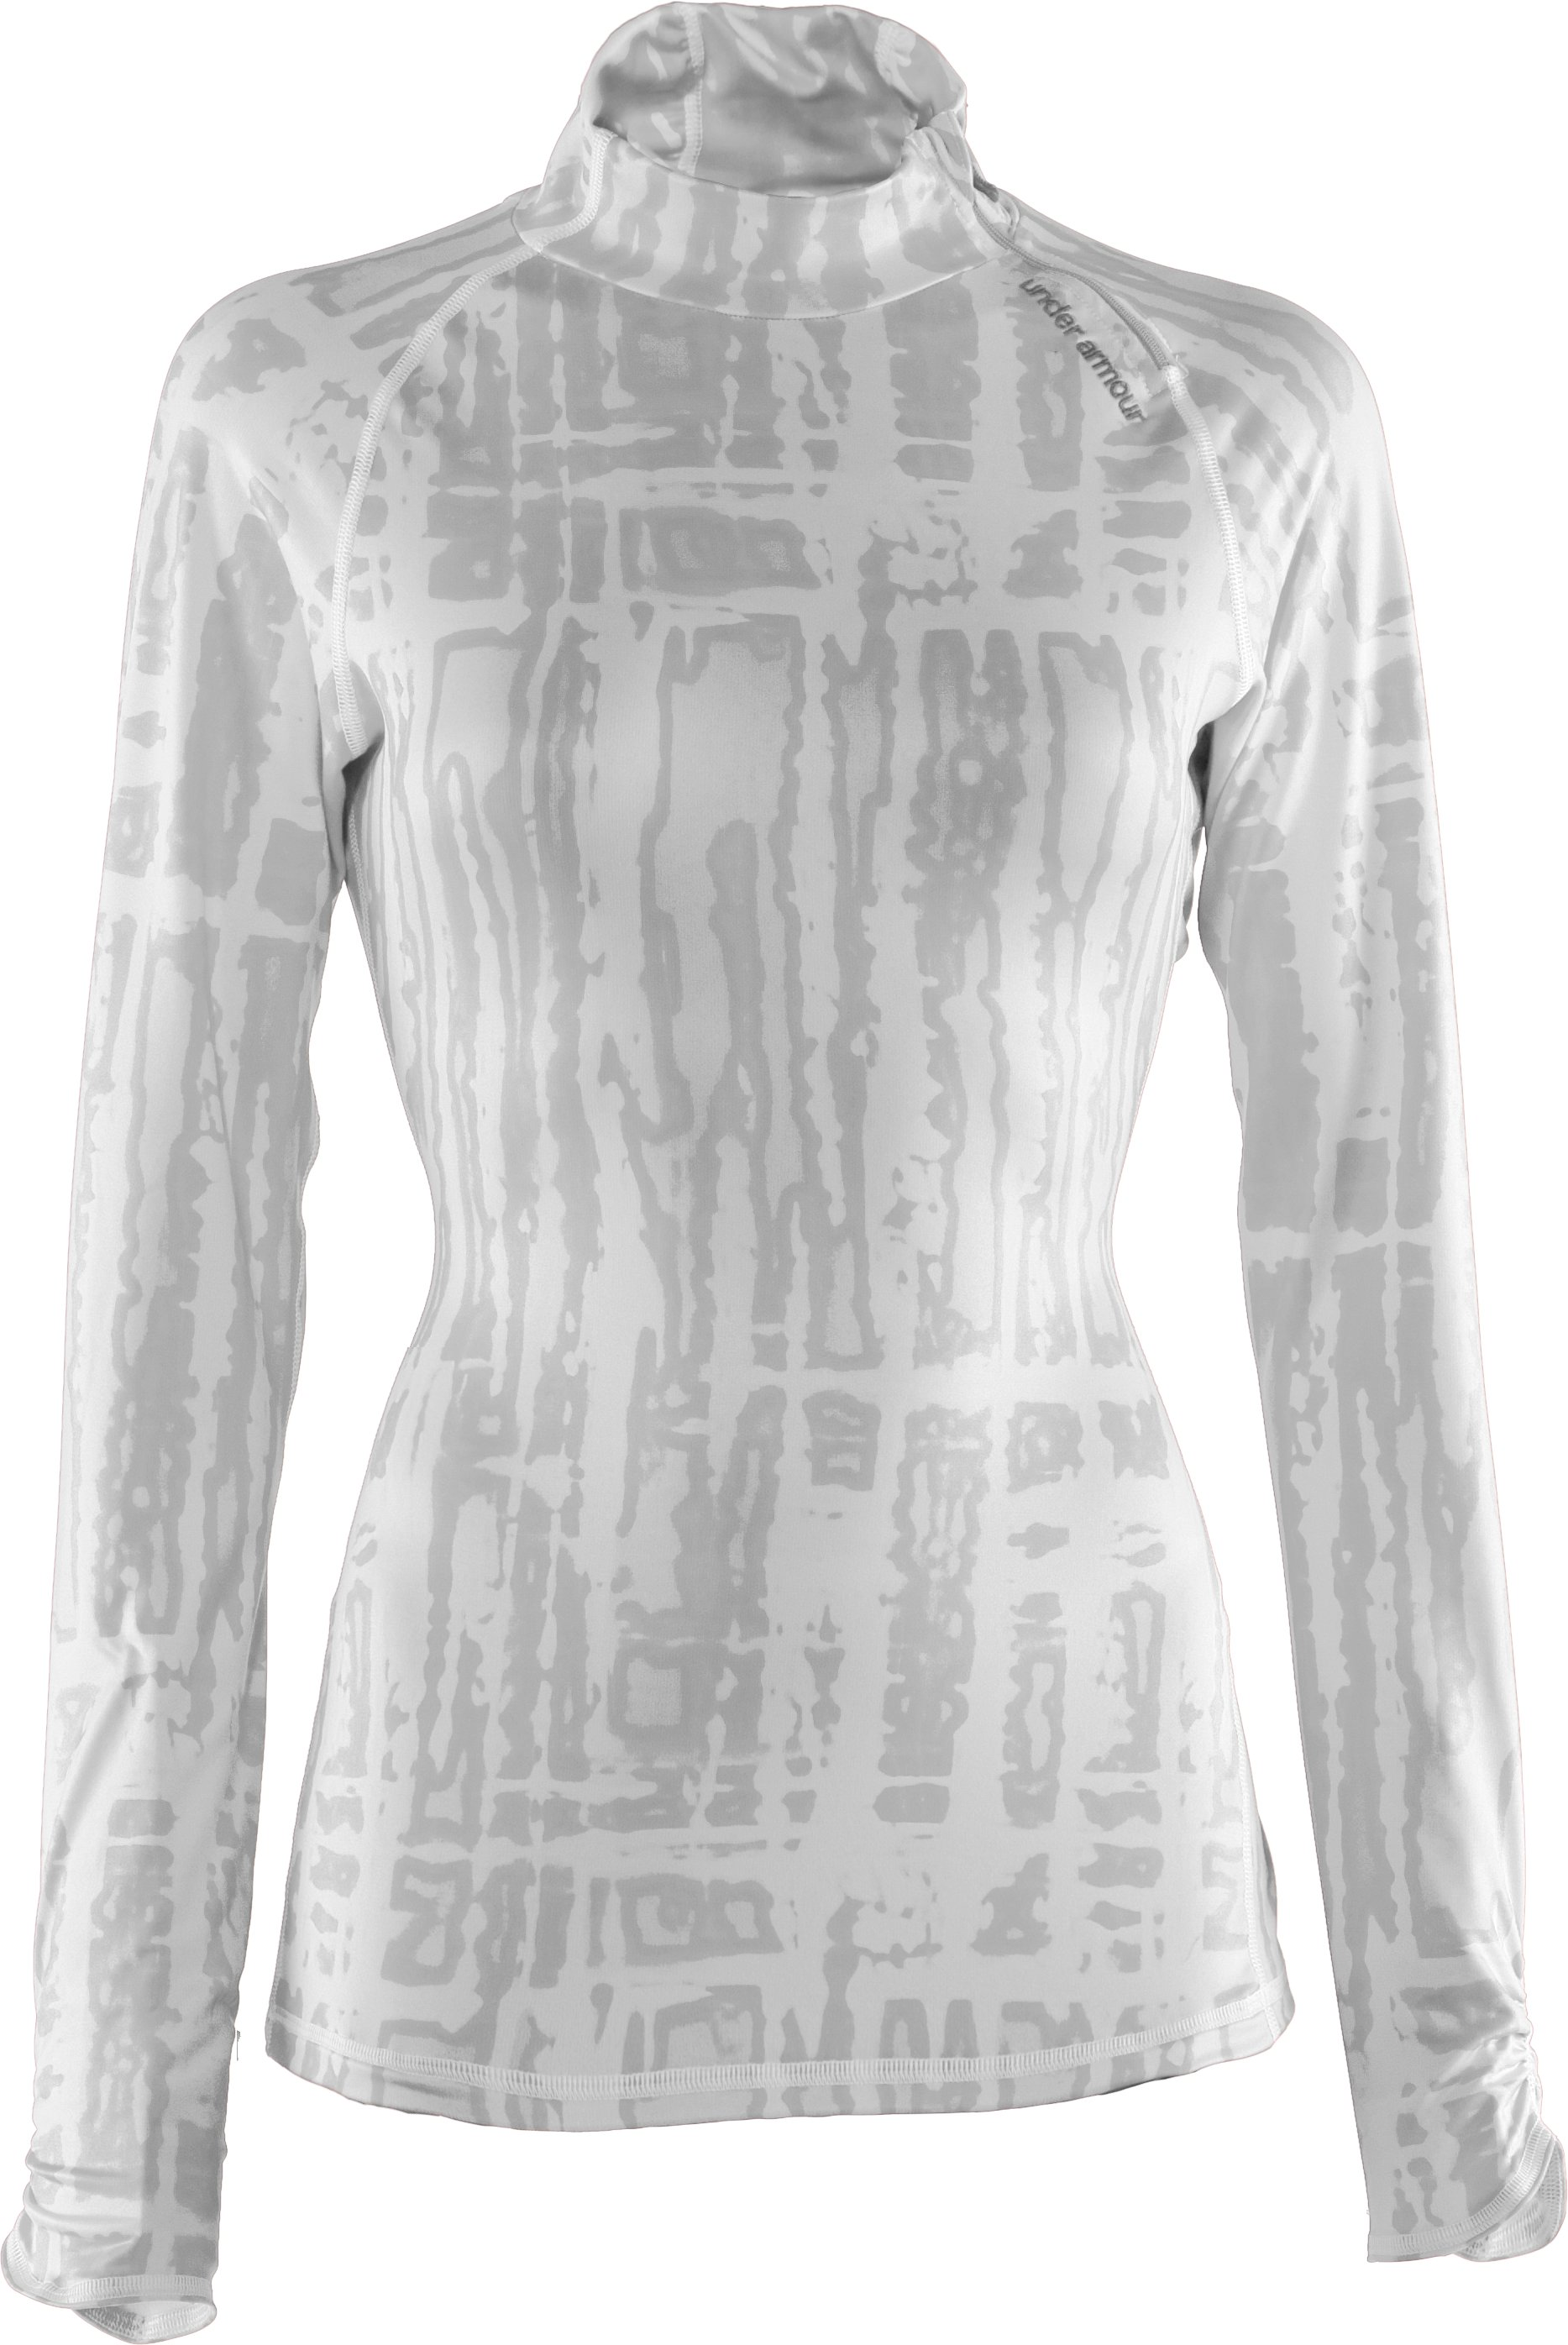 Women's Printed Fitted ColdGear® ¼ Zip, White, undefined